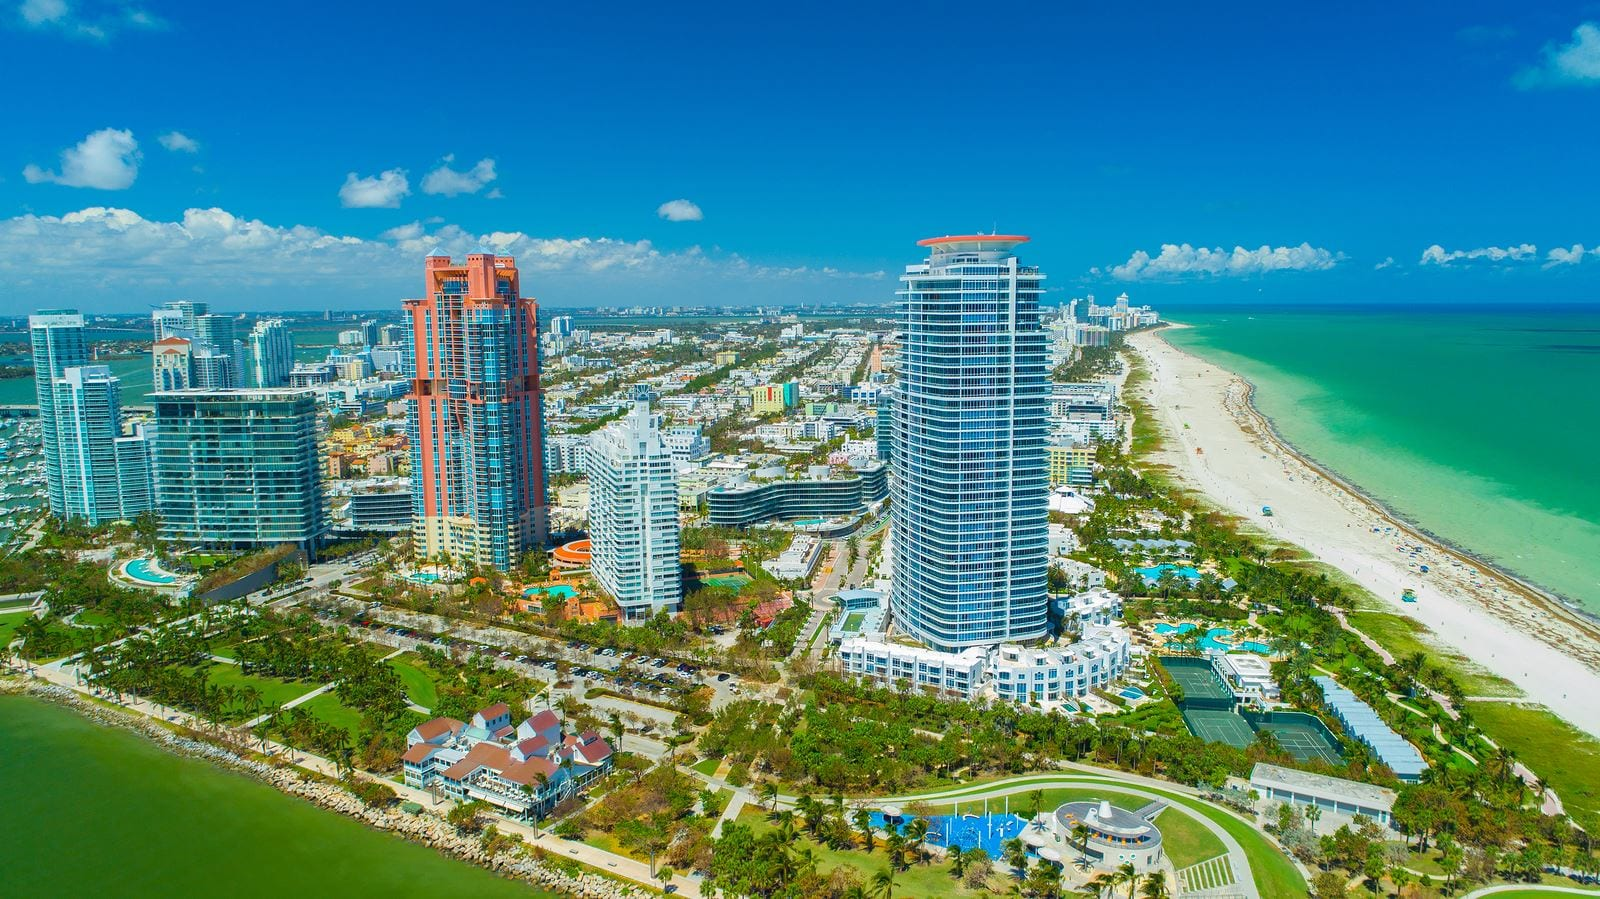 The Miami Housing Market Forecast for 2019 | Mashvisor